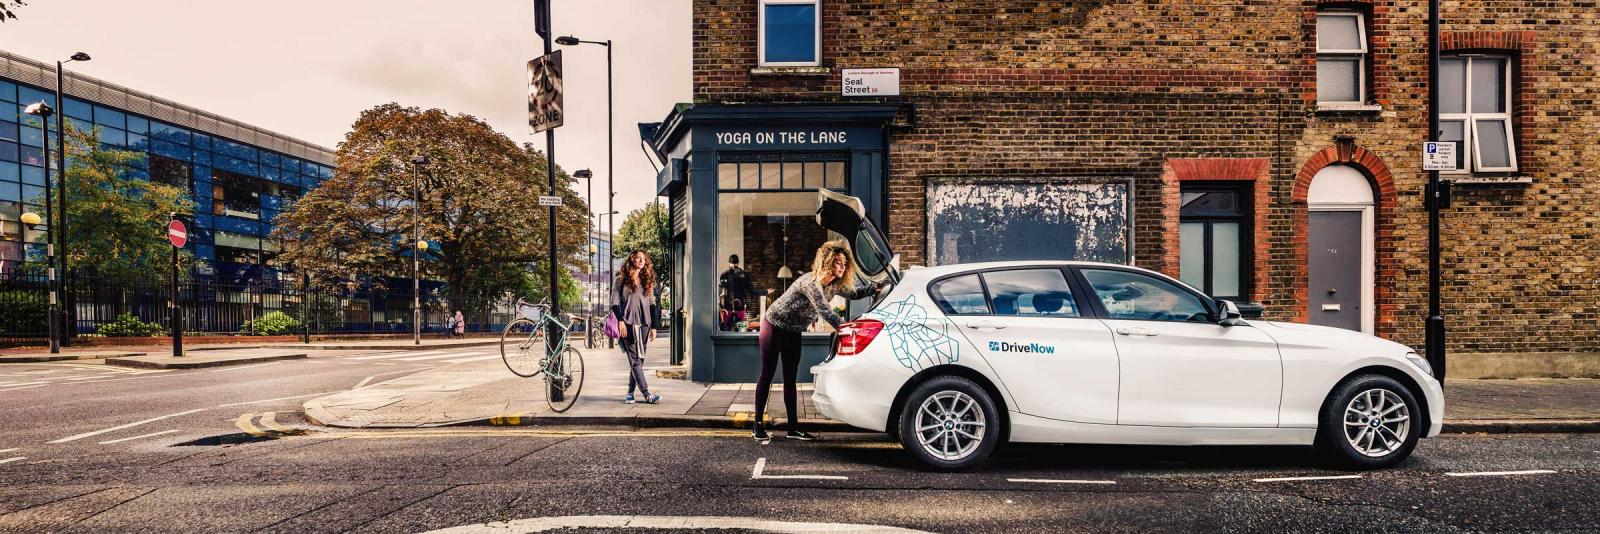 DriveNow_BMW_1Series_London_Yoga